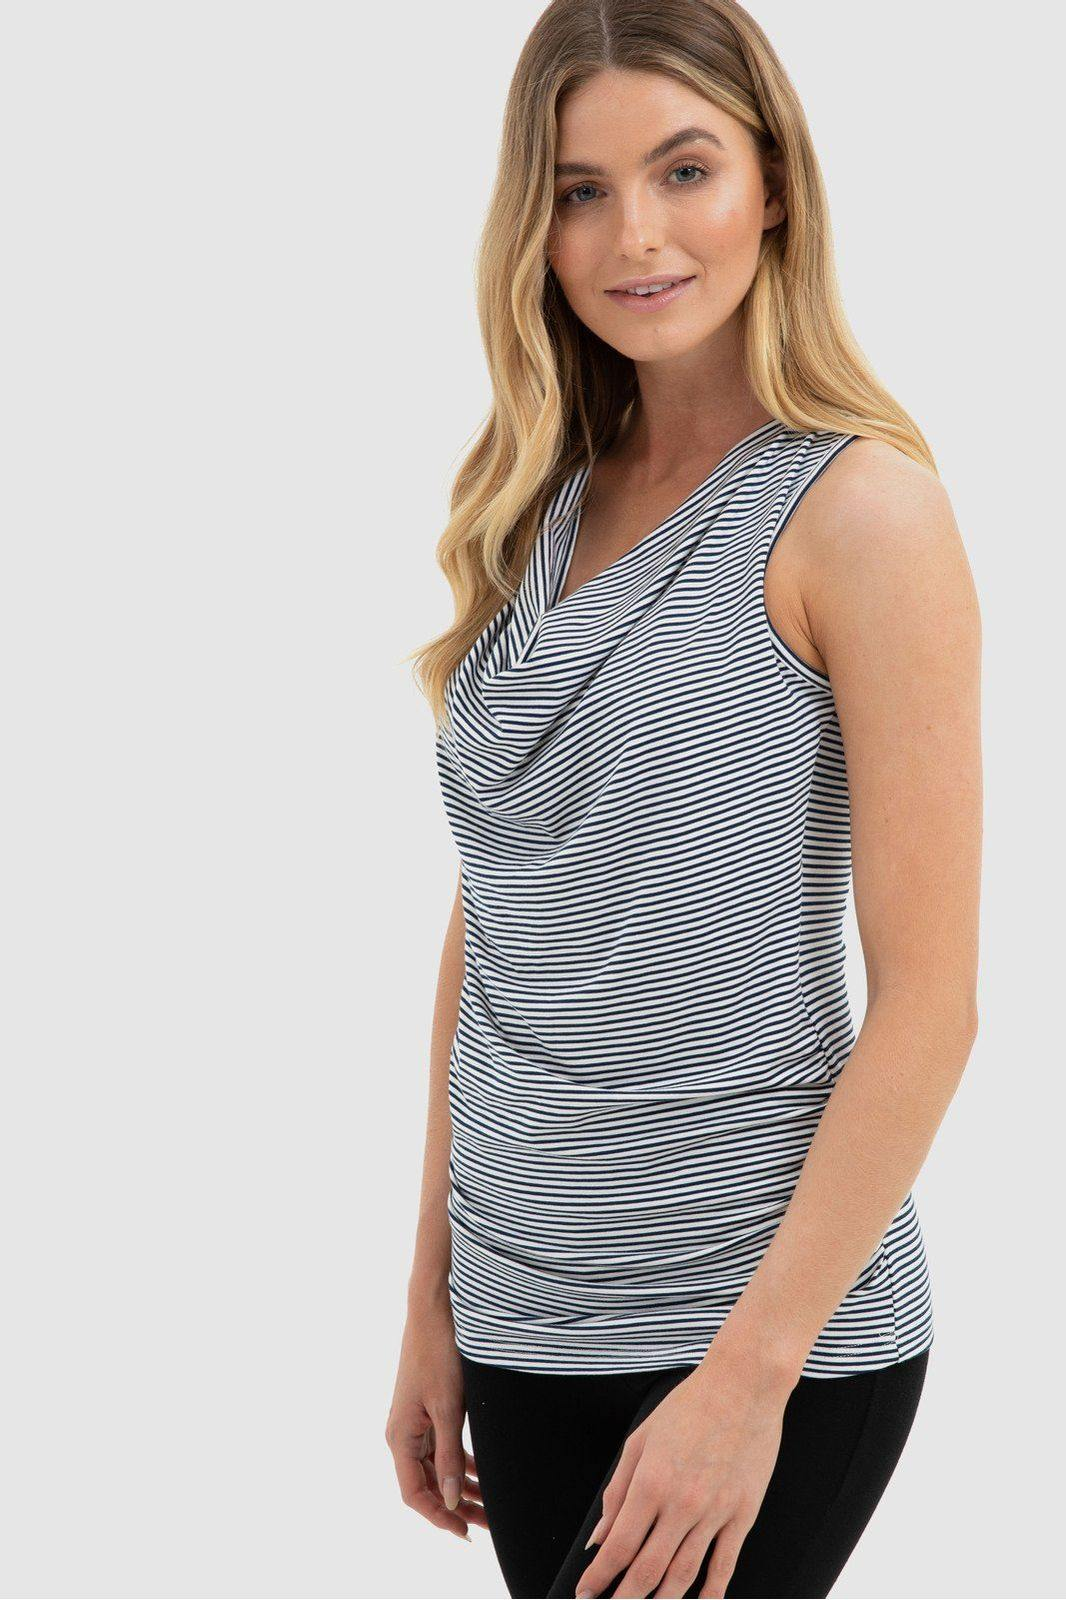 Bamboo Body  Cara Cowl Singlet - White & Navy style {{product.sku}} - buy from Weekends on 2nd Ave at {{shop.url}} or visit our shop at Second Ave Plaza on the corner of Beaufort Street & Second Avenue Mount Lawley WA